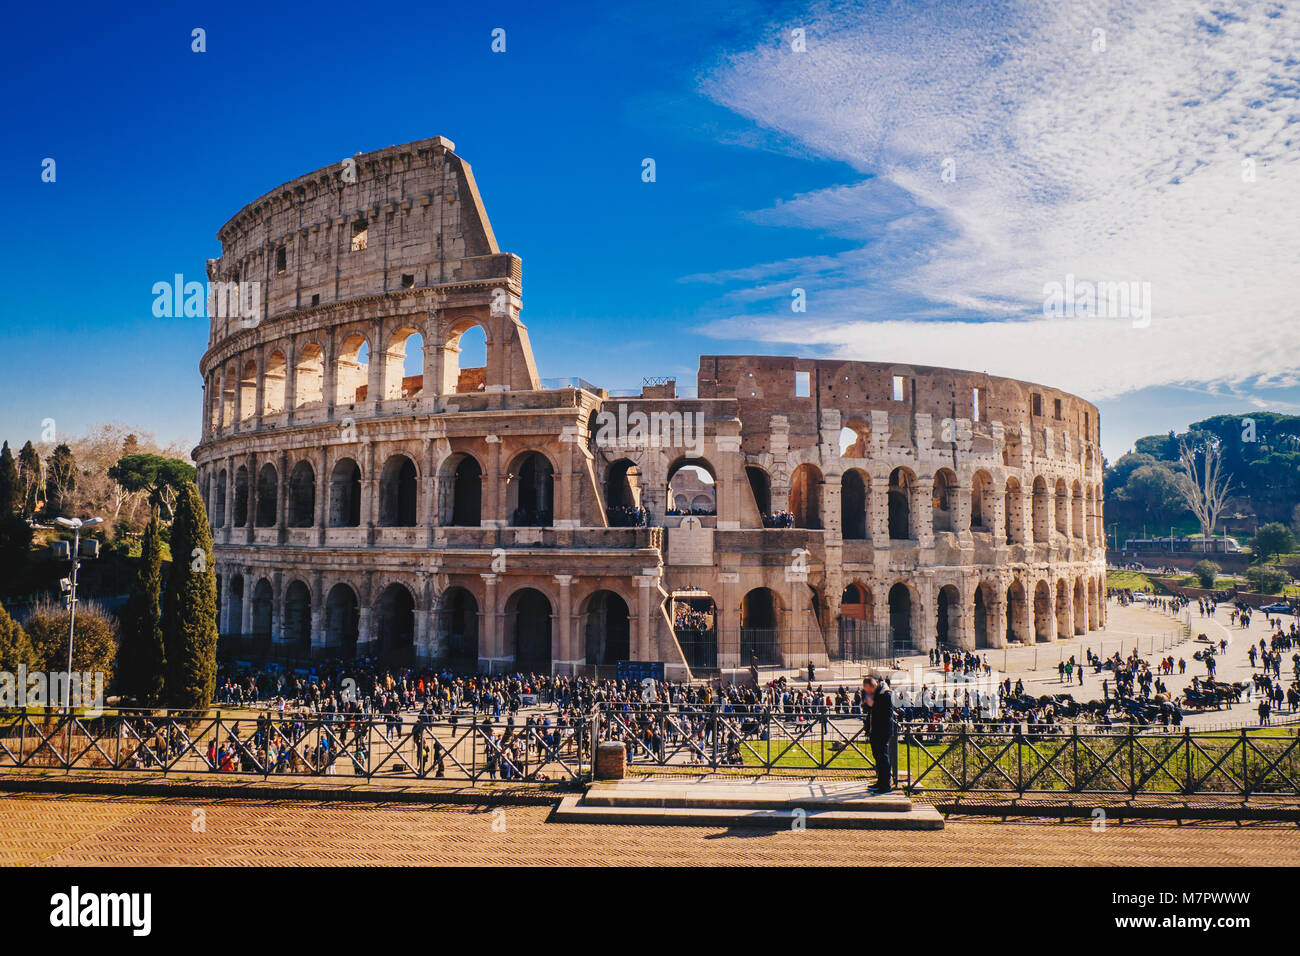 The Roman Colosseum in Rome, Italy HDR image - Stock Image